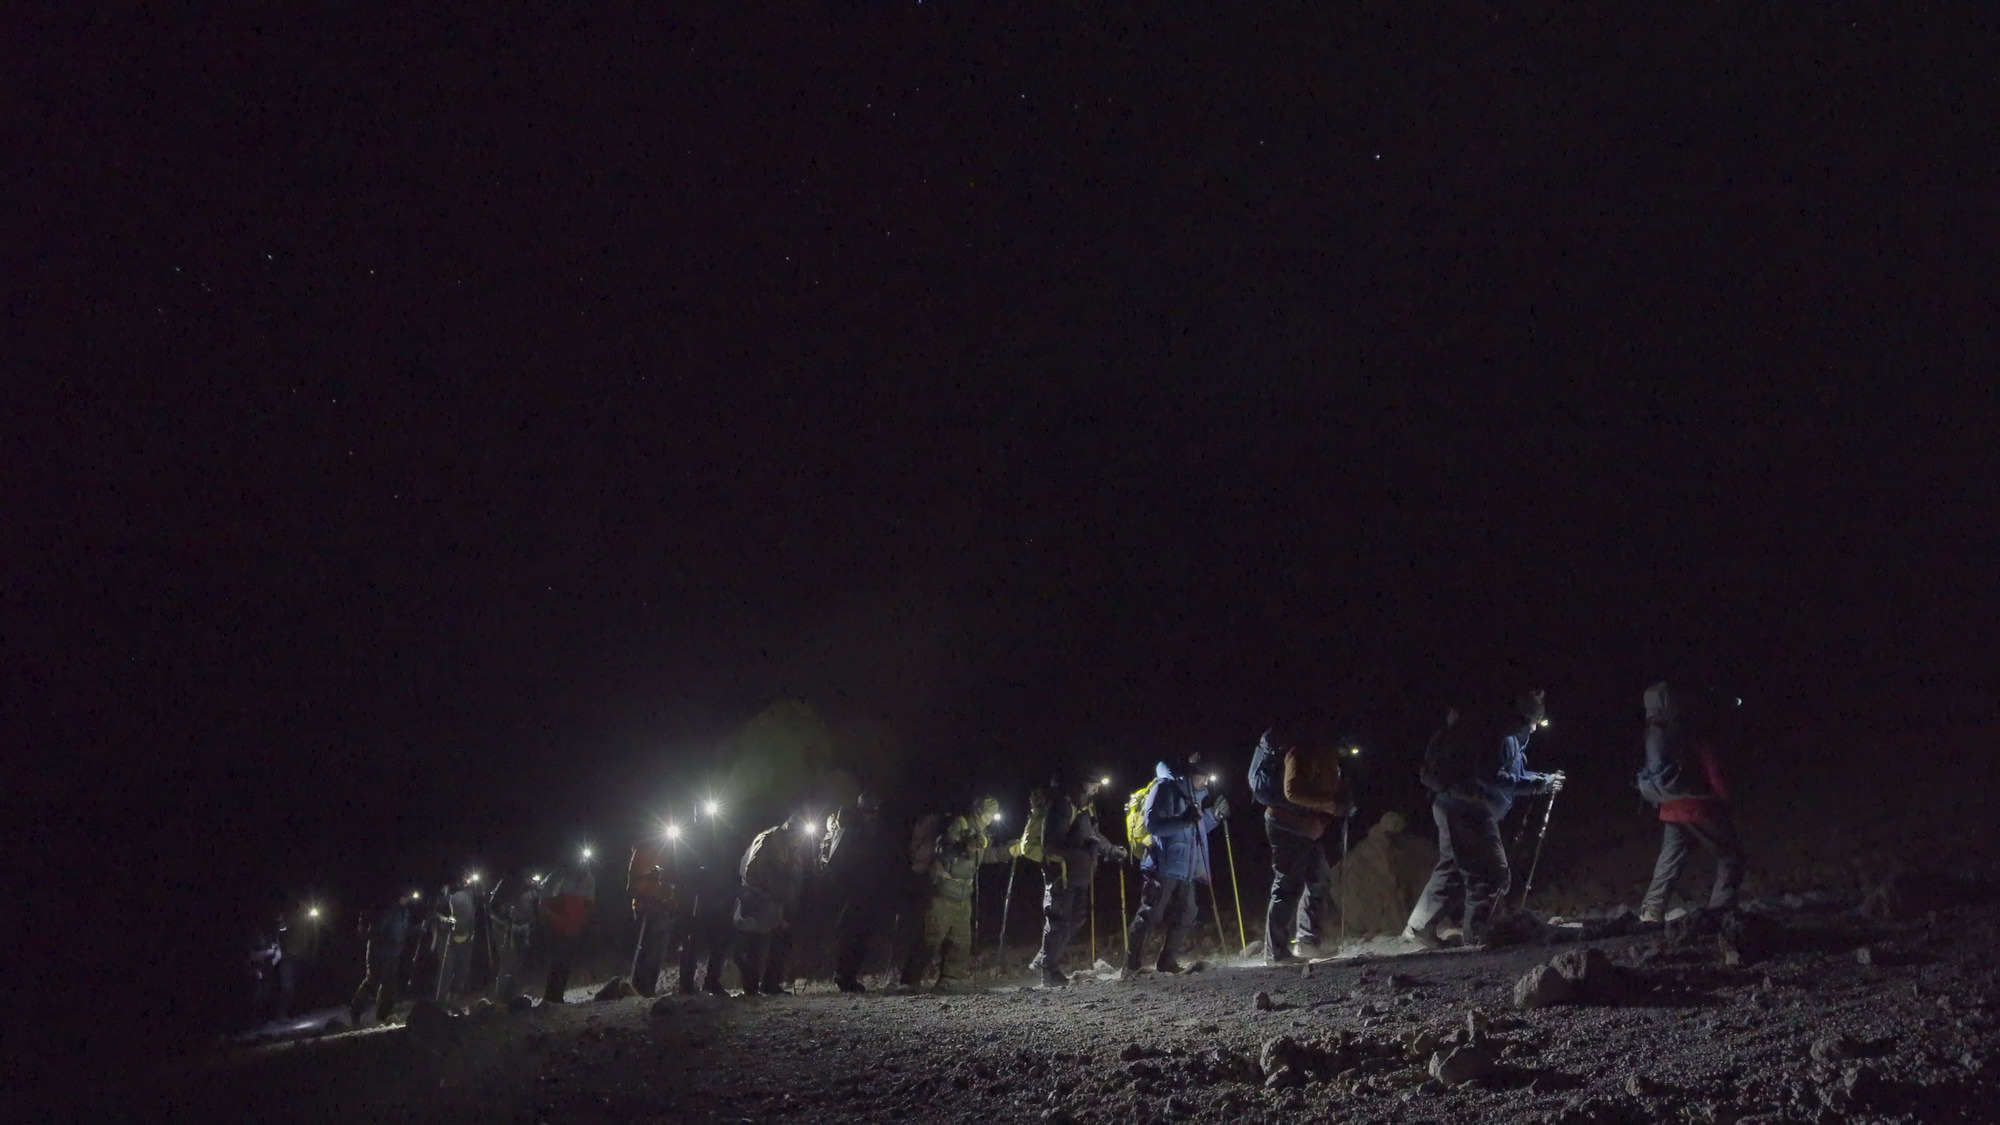 kili-night-hiking-blog.jpg